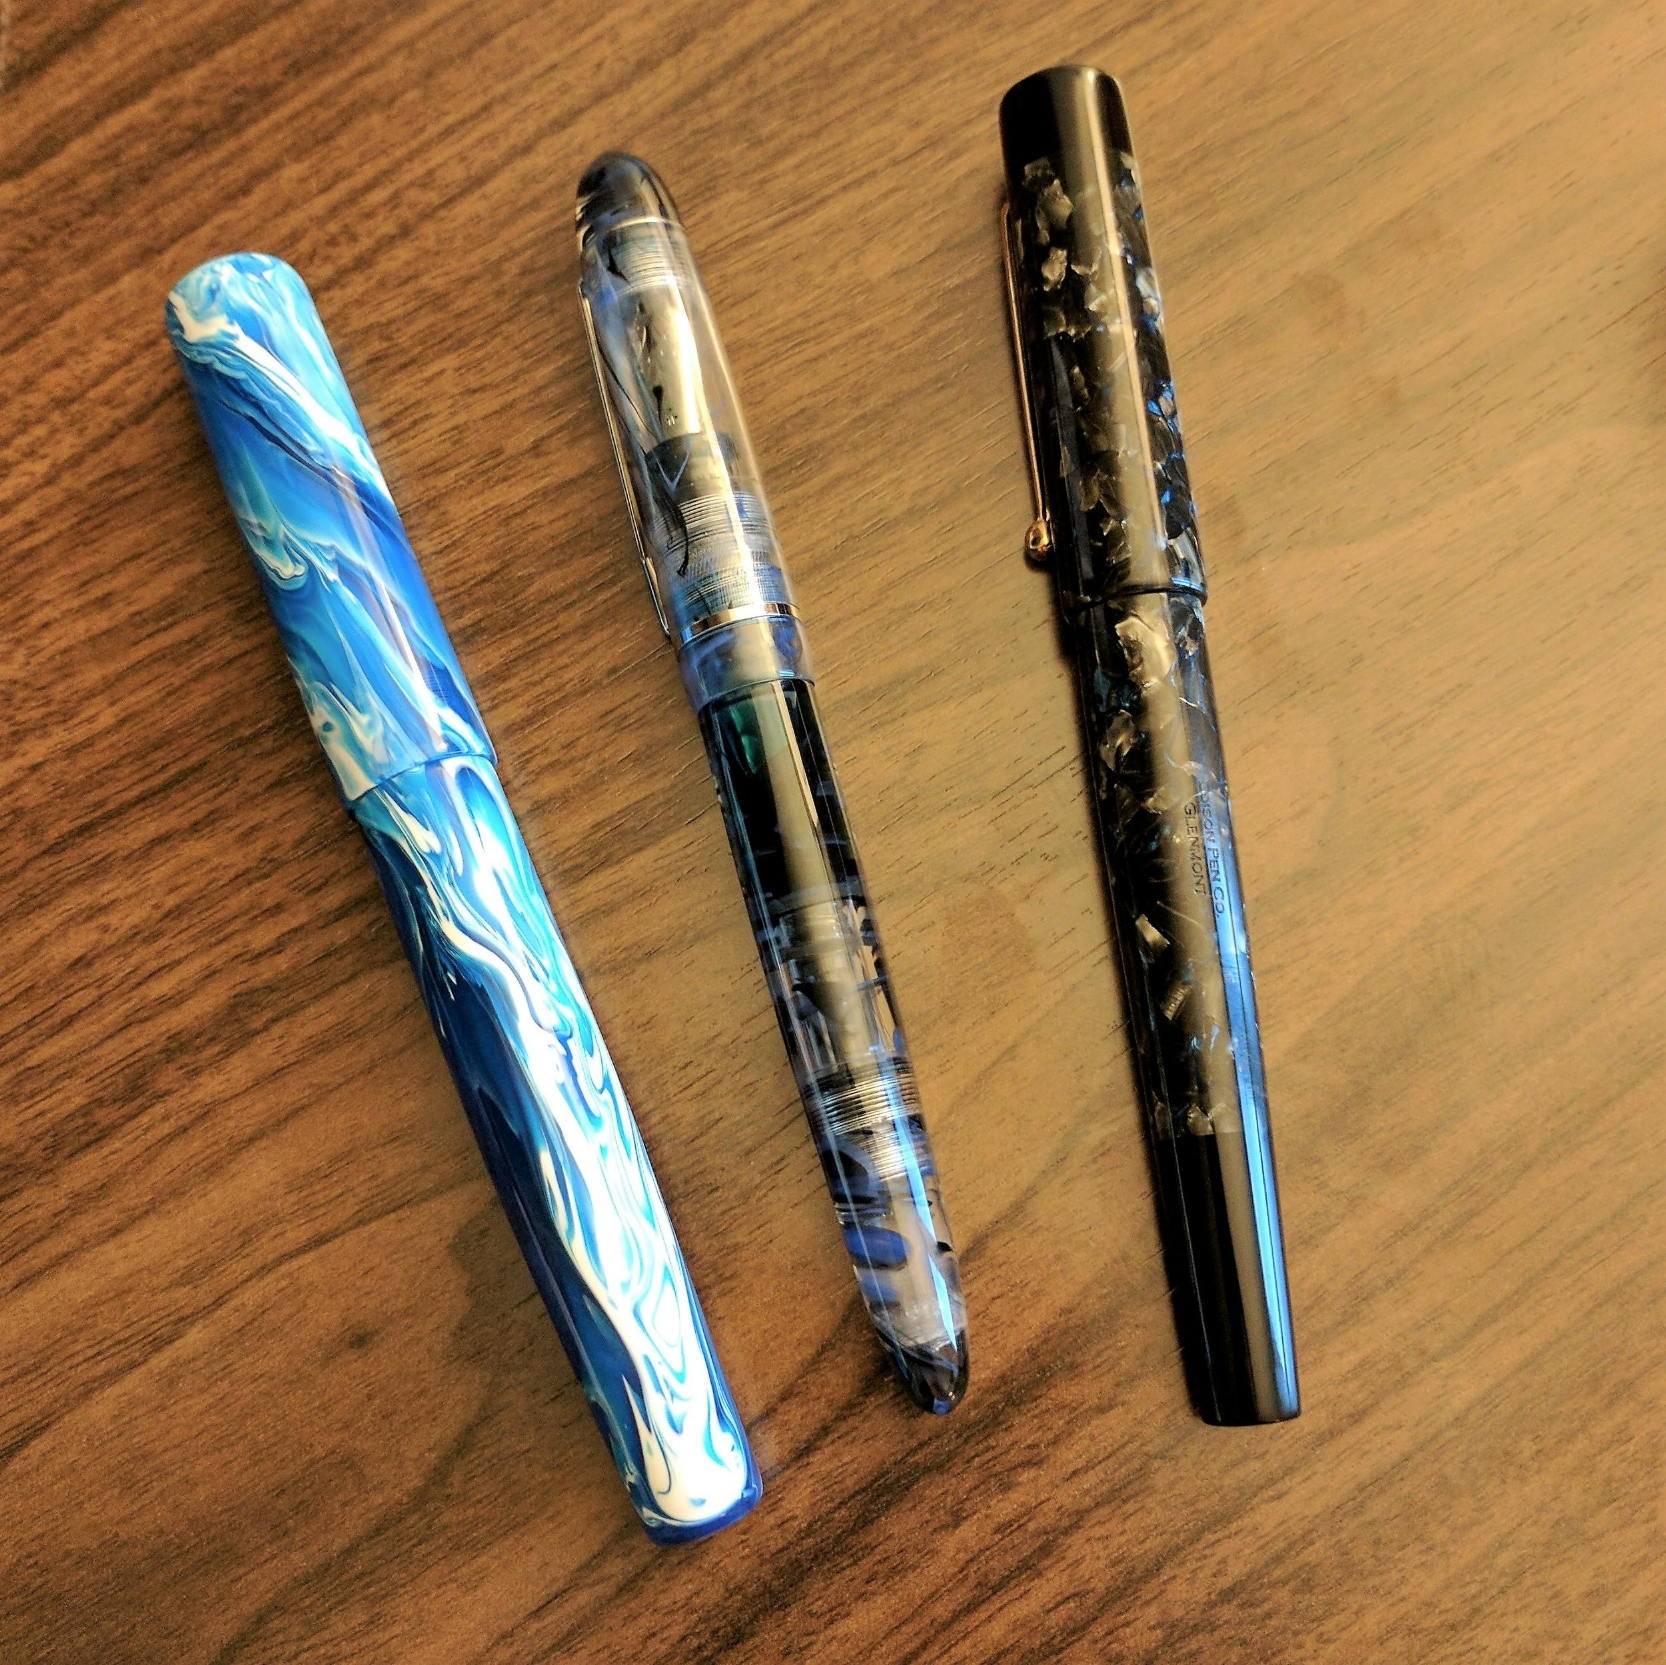 From left: Kanilea Pen Co Nui Nalu, Edison Menlo with Draw Filler in blue flecked acrylic, and Edison Glenmont in Tibaldi Impero Celluloid.